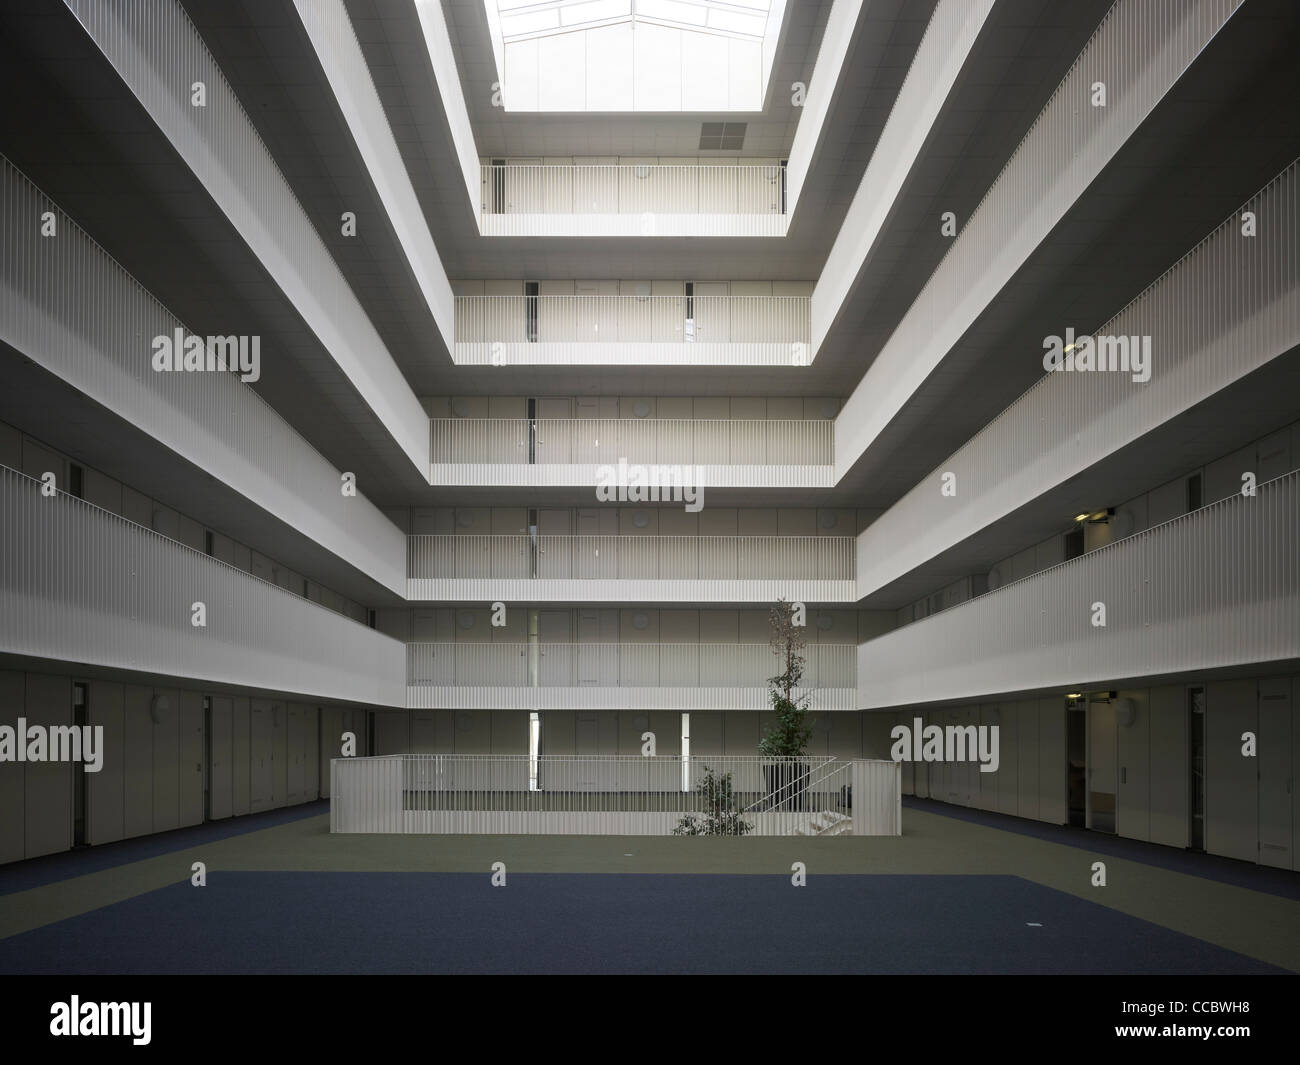 Ijburg Apartments Witte Kaap, Claus + Kaan Architects, Amsterdam,  Netherlands, 2010, View Of Atrium With Skylight